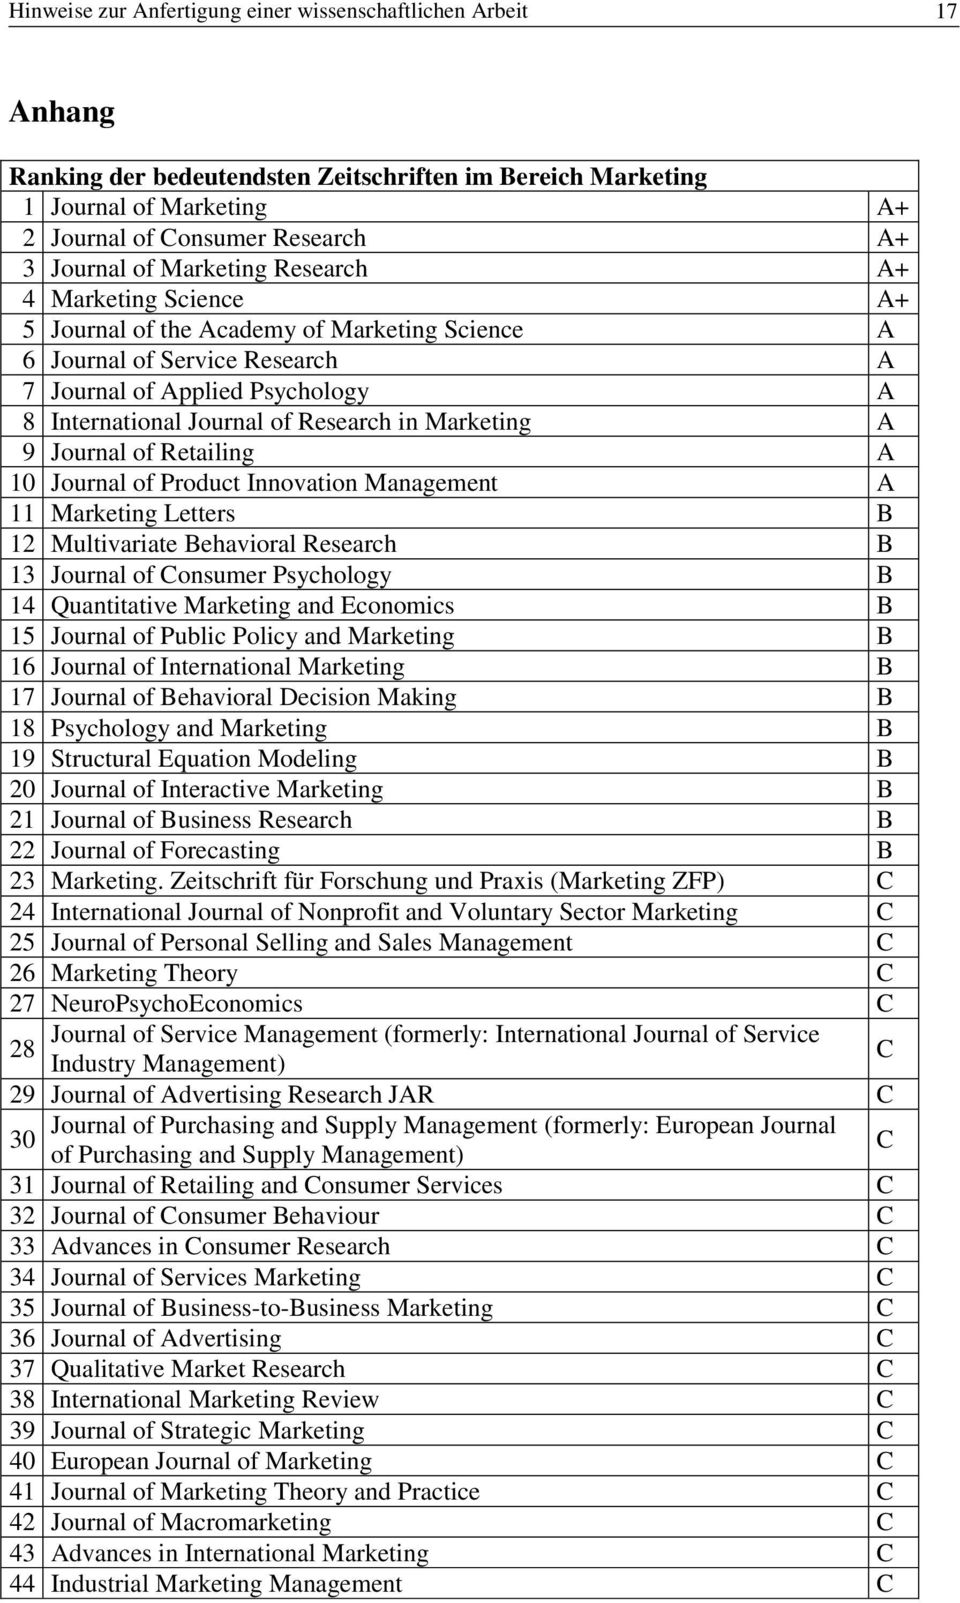 in Marketing A 9 Journal of Retailing A 10 Journal of Product Innovation Management A 11 Marketing Letters B 12 Multivariate Behavioral Research B 13 Journal of Consumer Psychology B 14 Quantitative